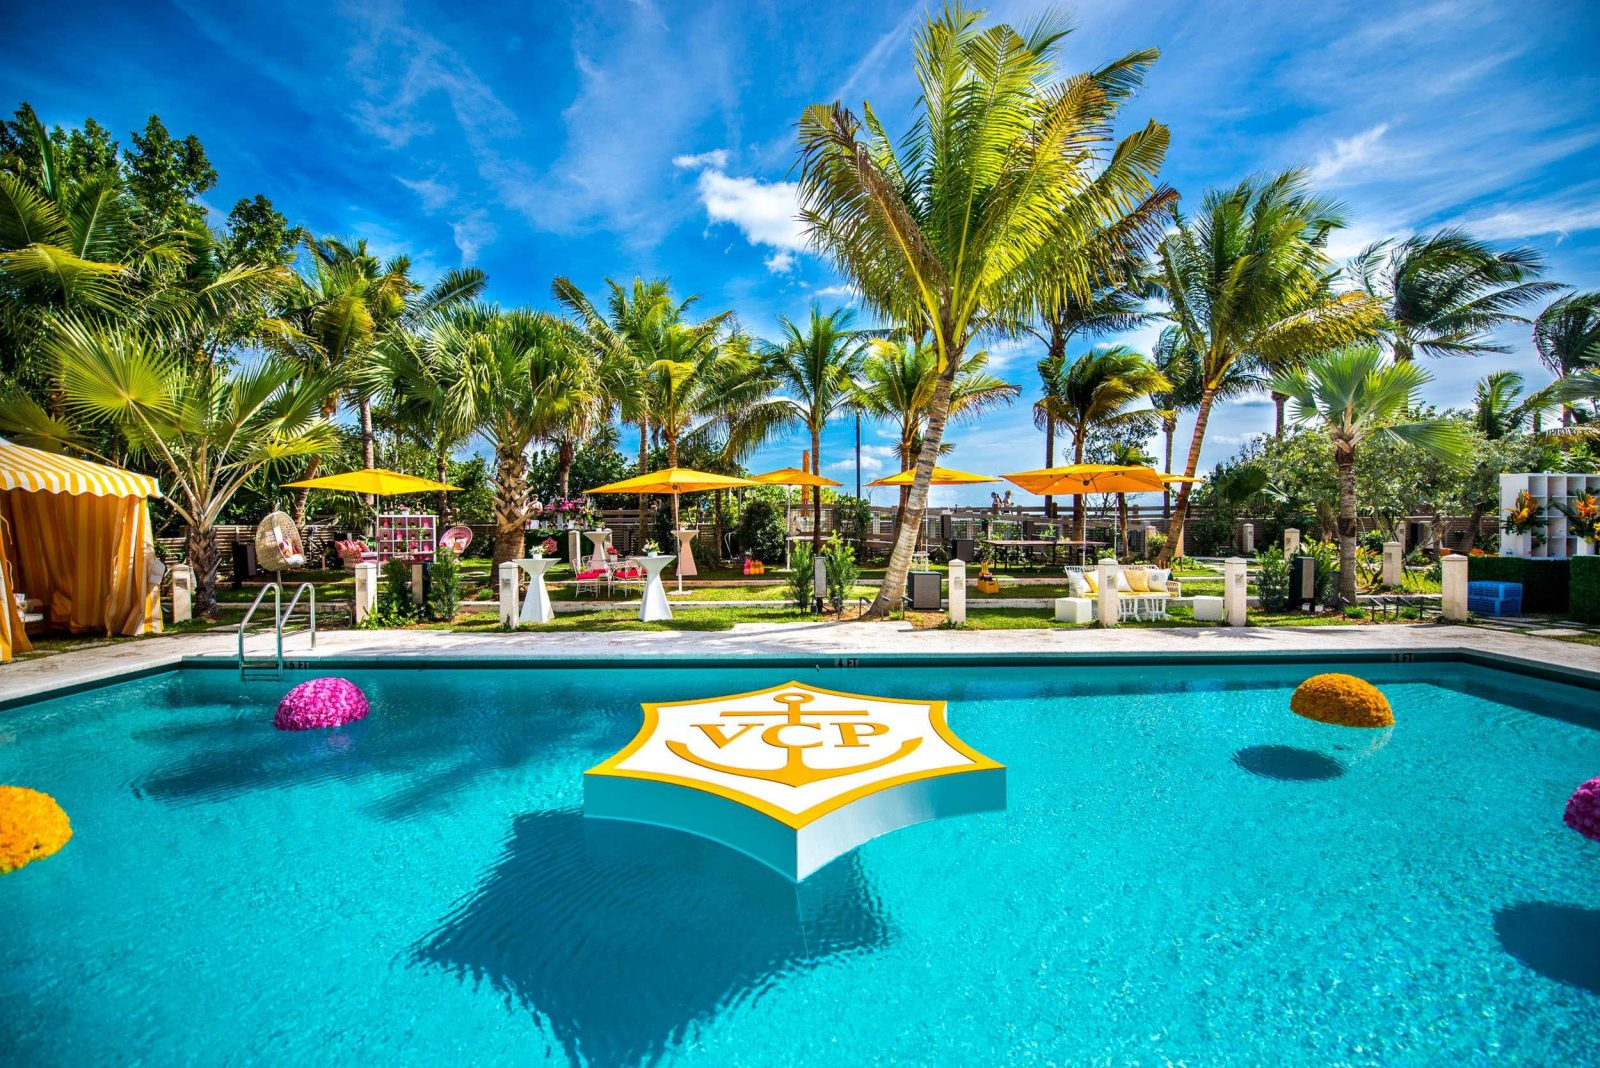 Veuve Clicquot Carnaval Returns To Miami For A Week-Long Series Of Events